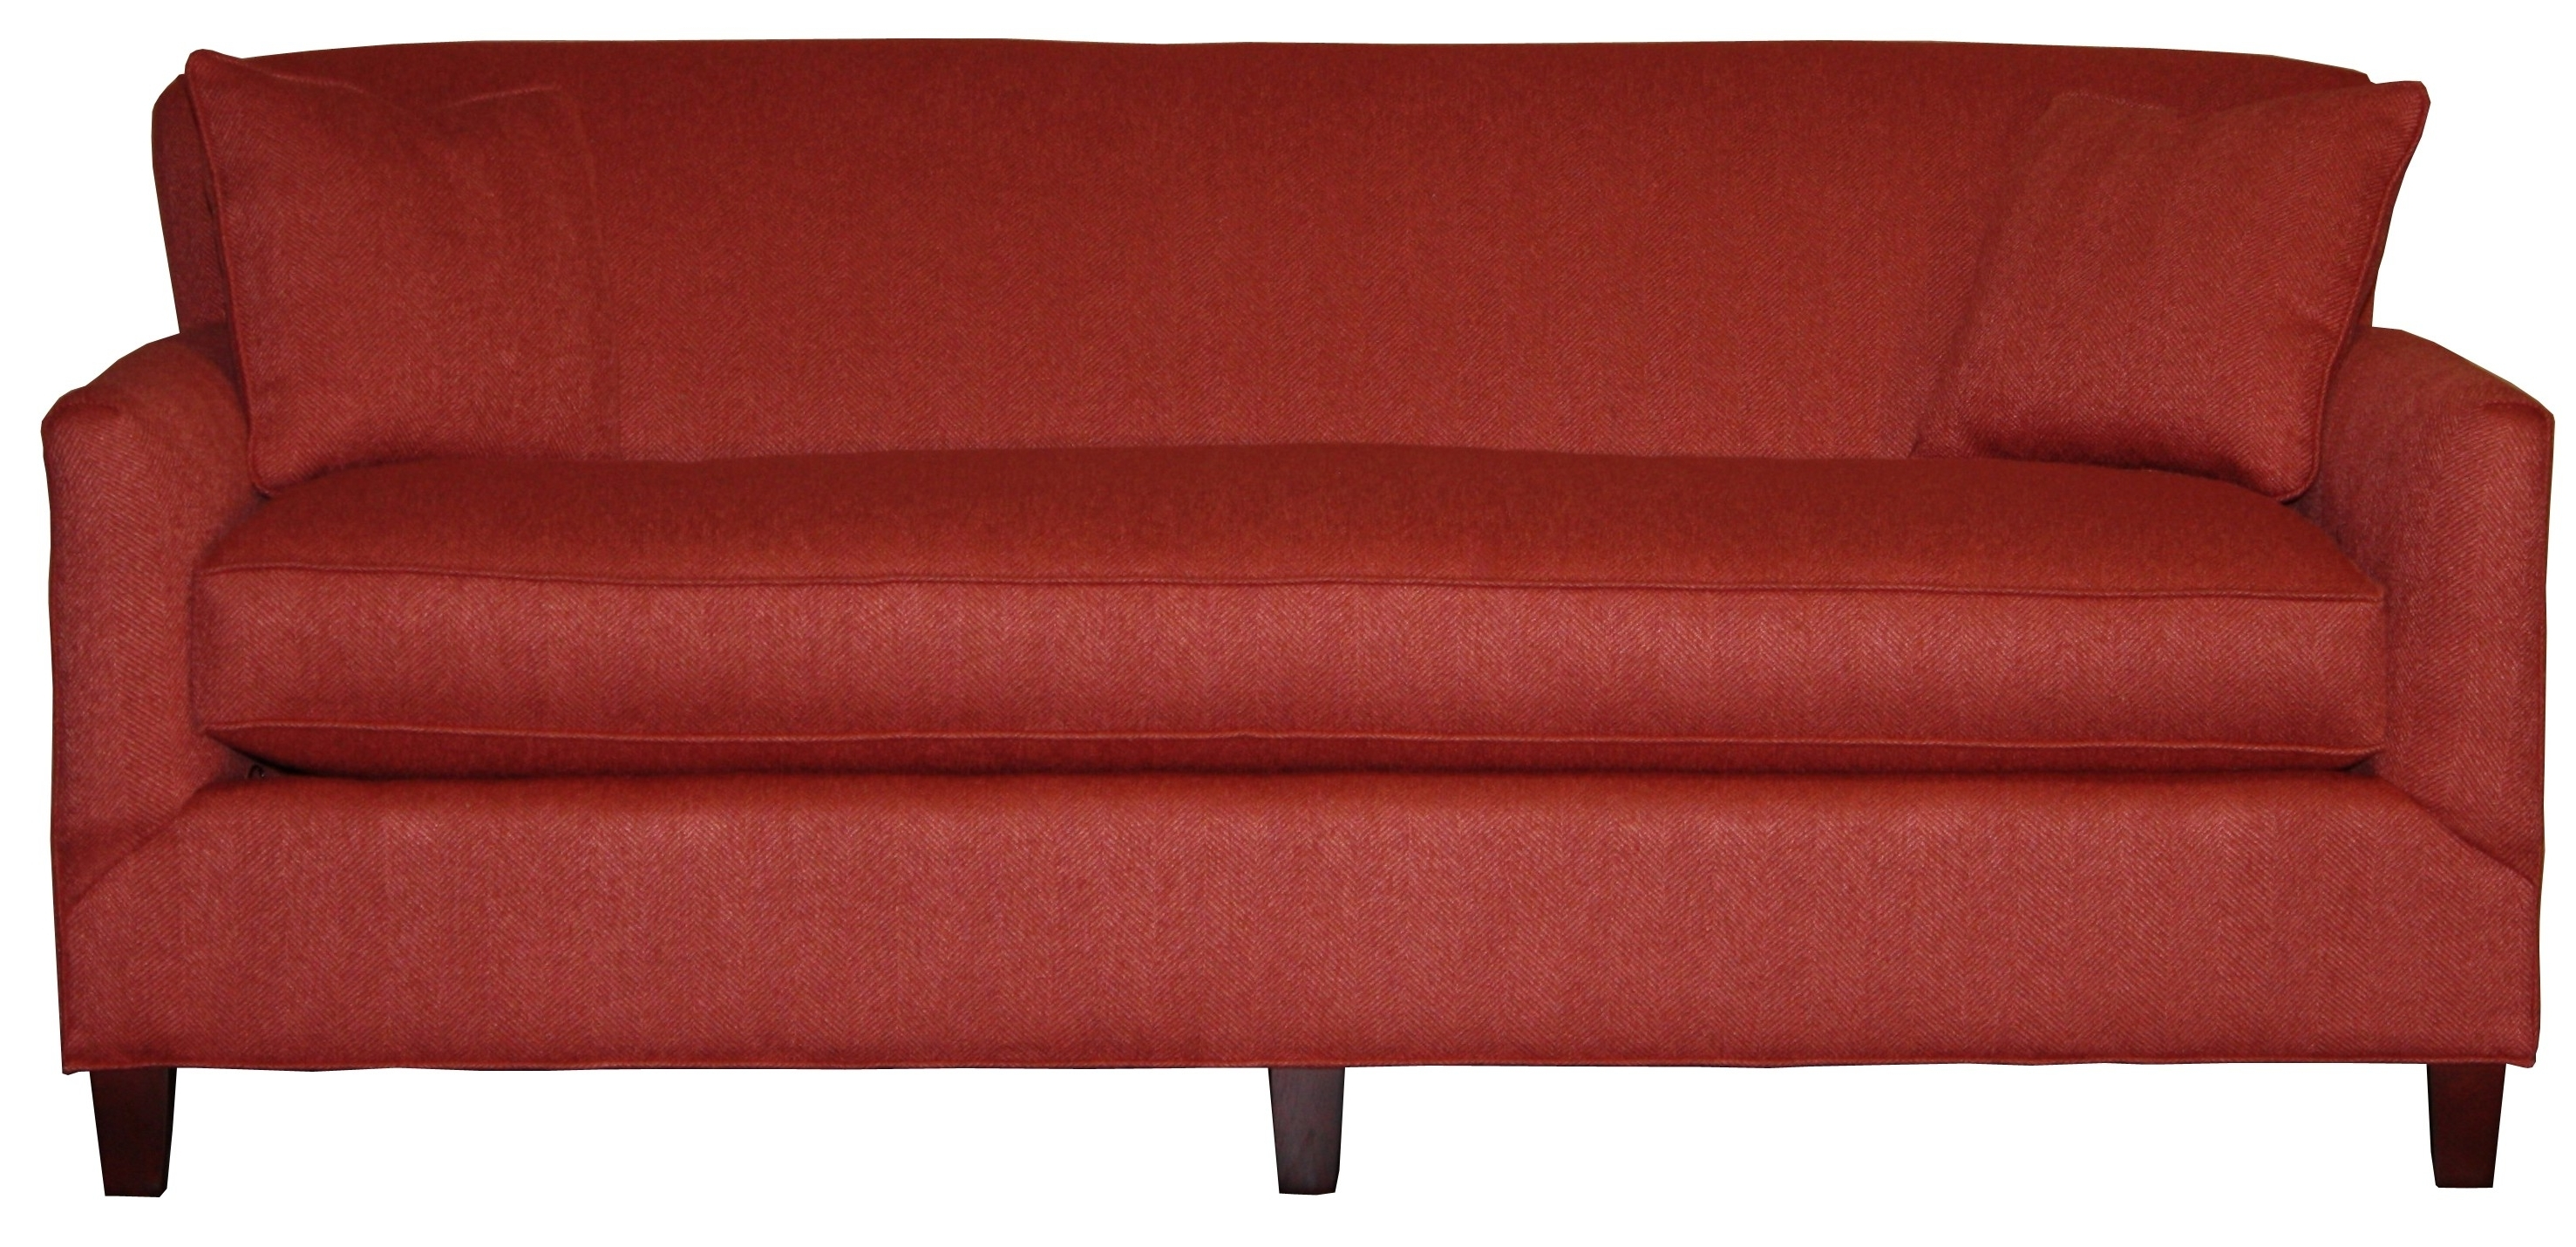 Recent One Cushion Sofas – Home Design Ideas And Pictures Intended For One Cushion Sofas (View 12 of 15)